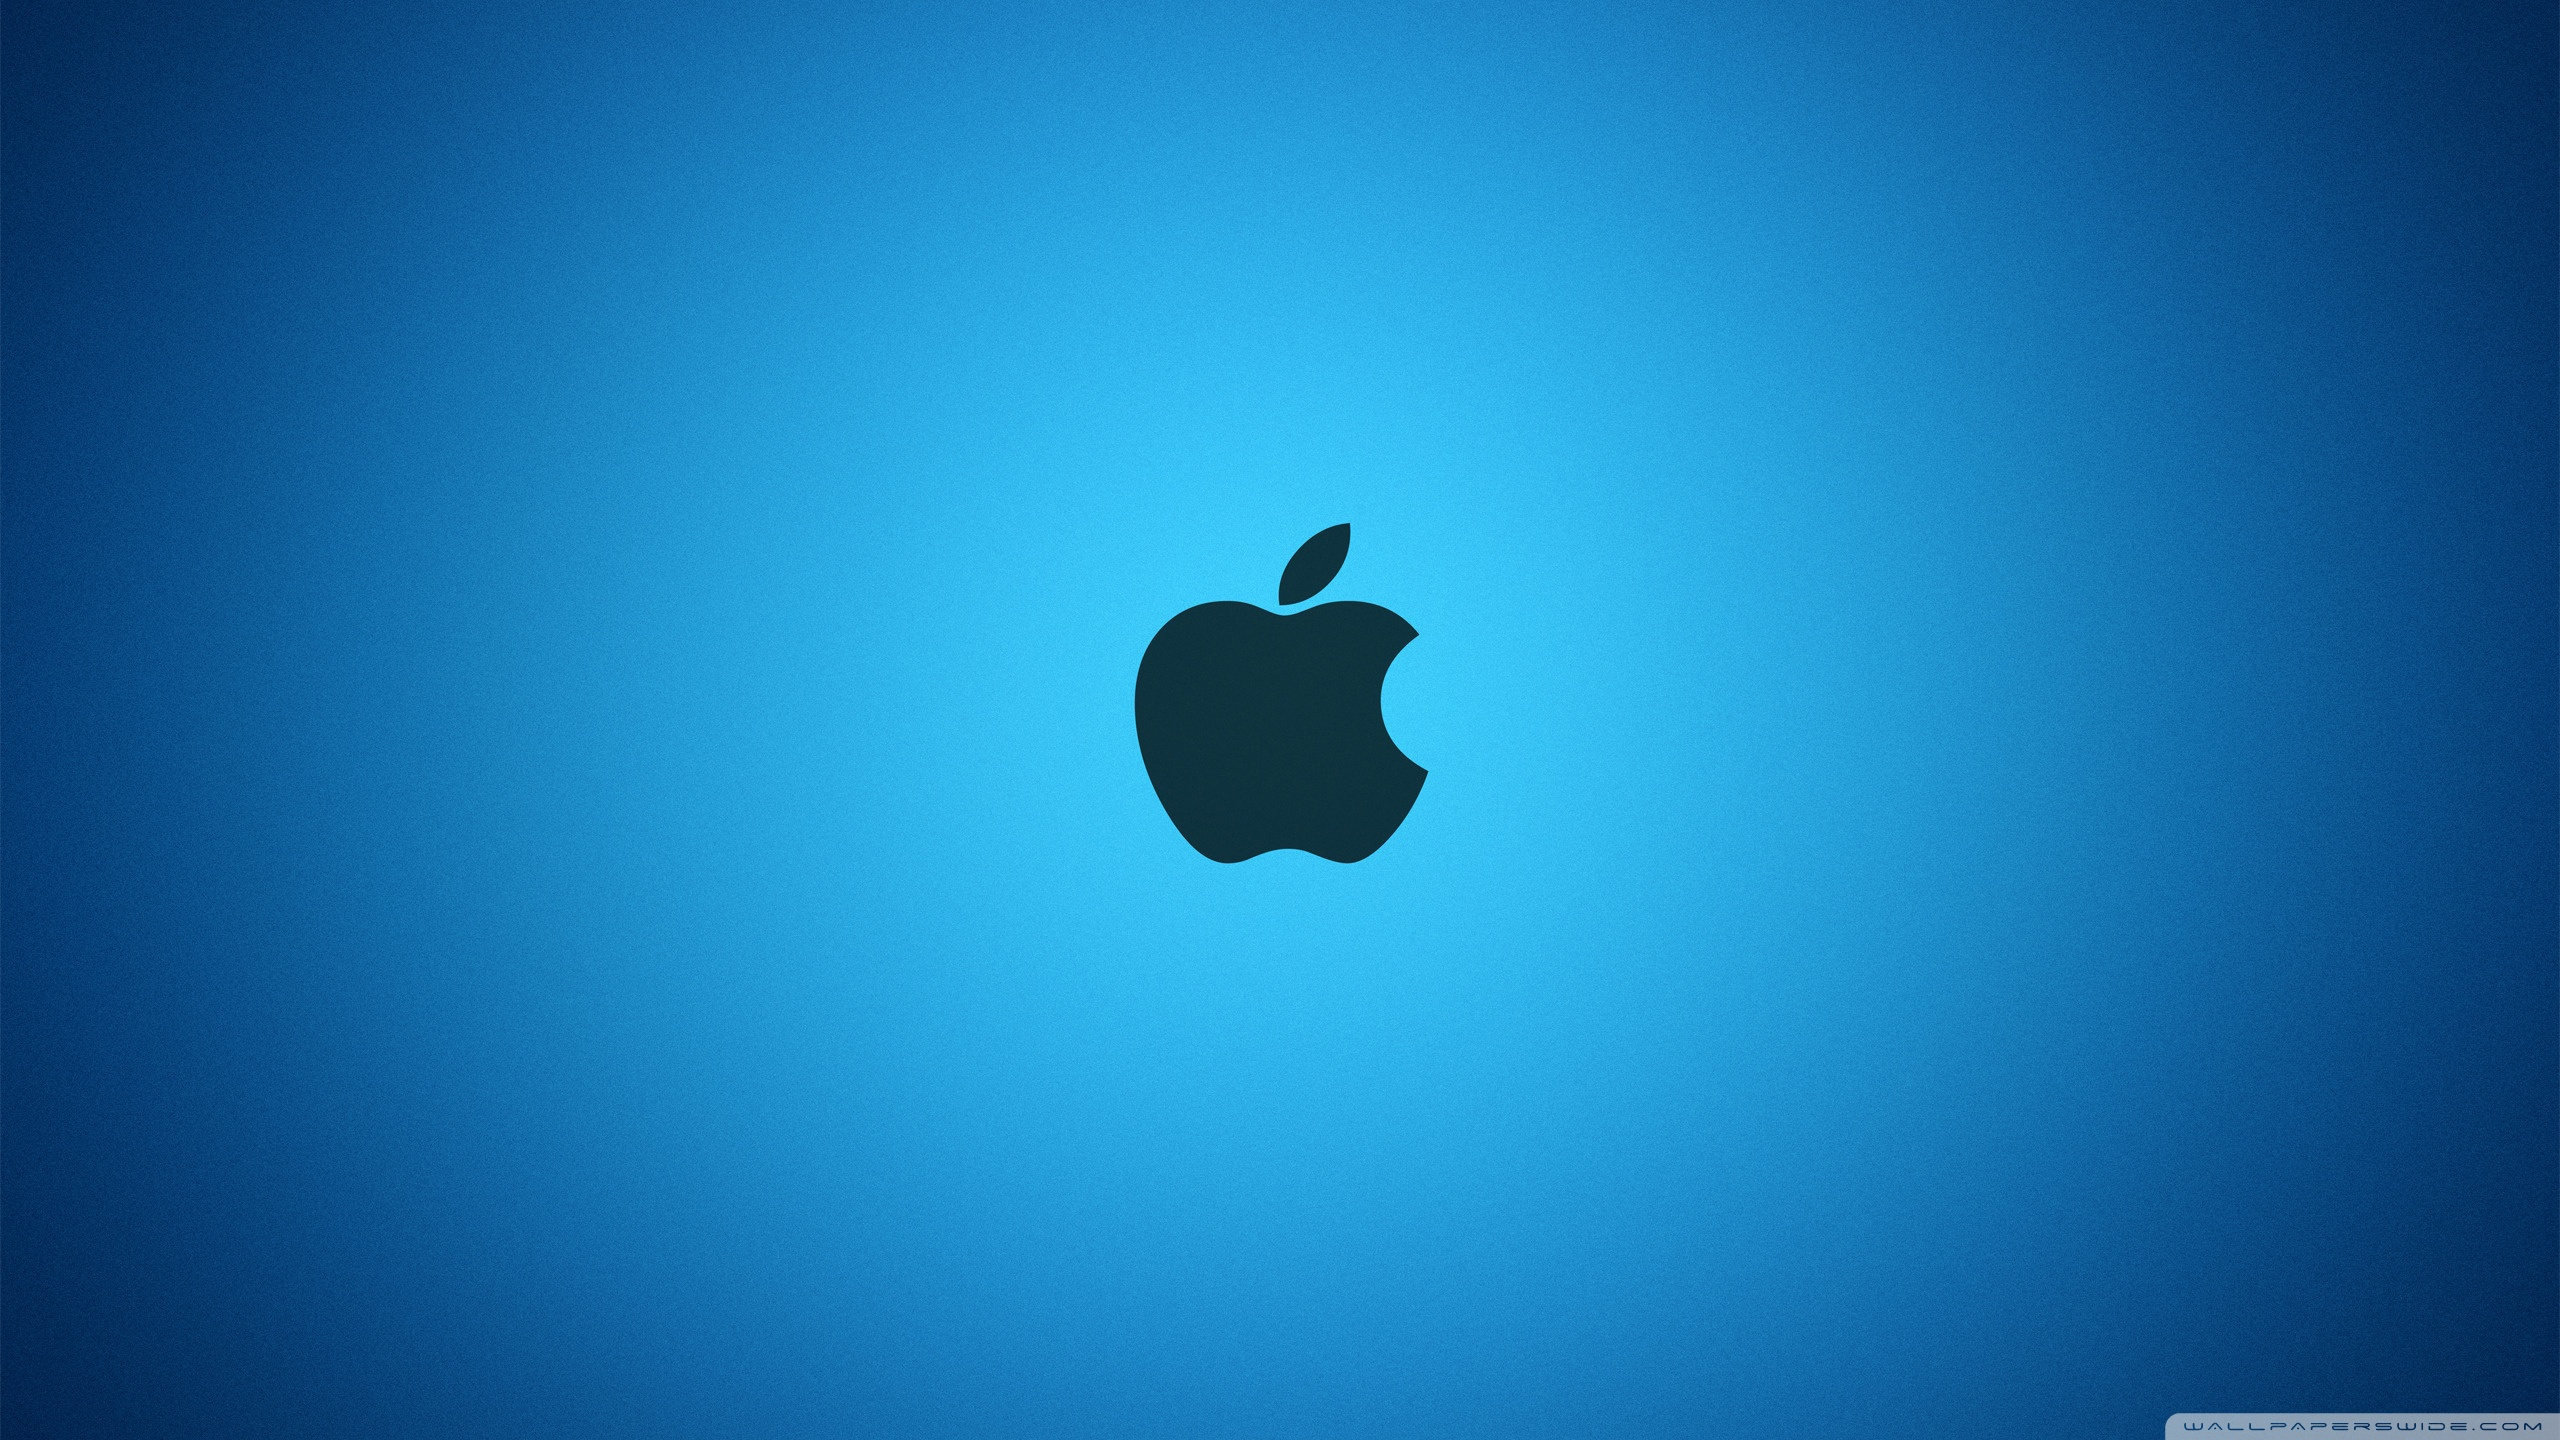 Apple Wallpaper HD  HD Wallpapers, Gifs, Backgrounds, Images 2560x1440